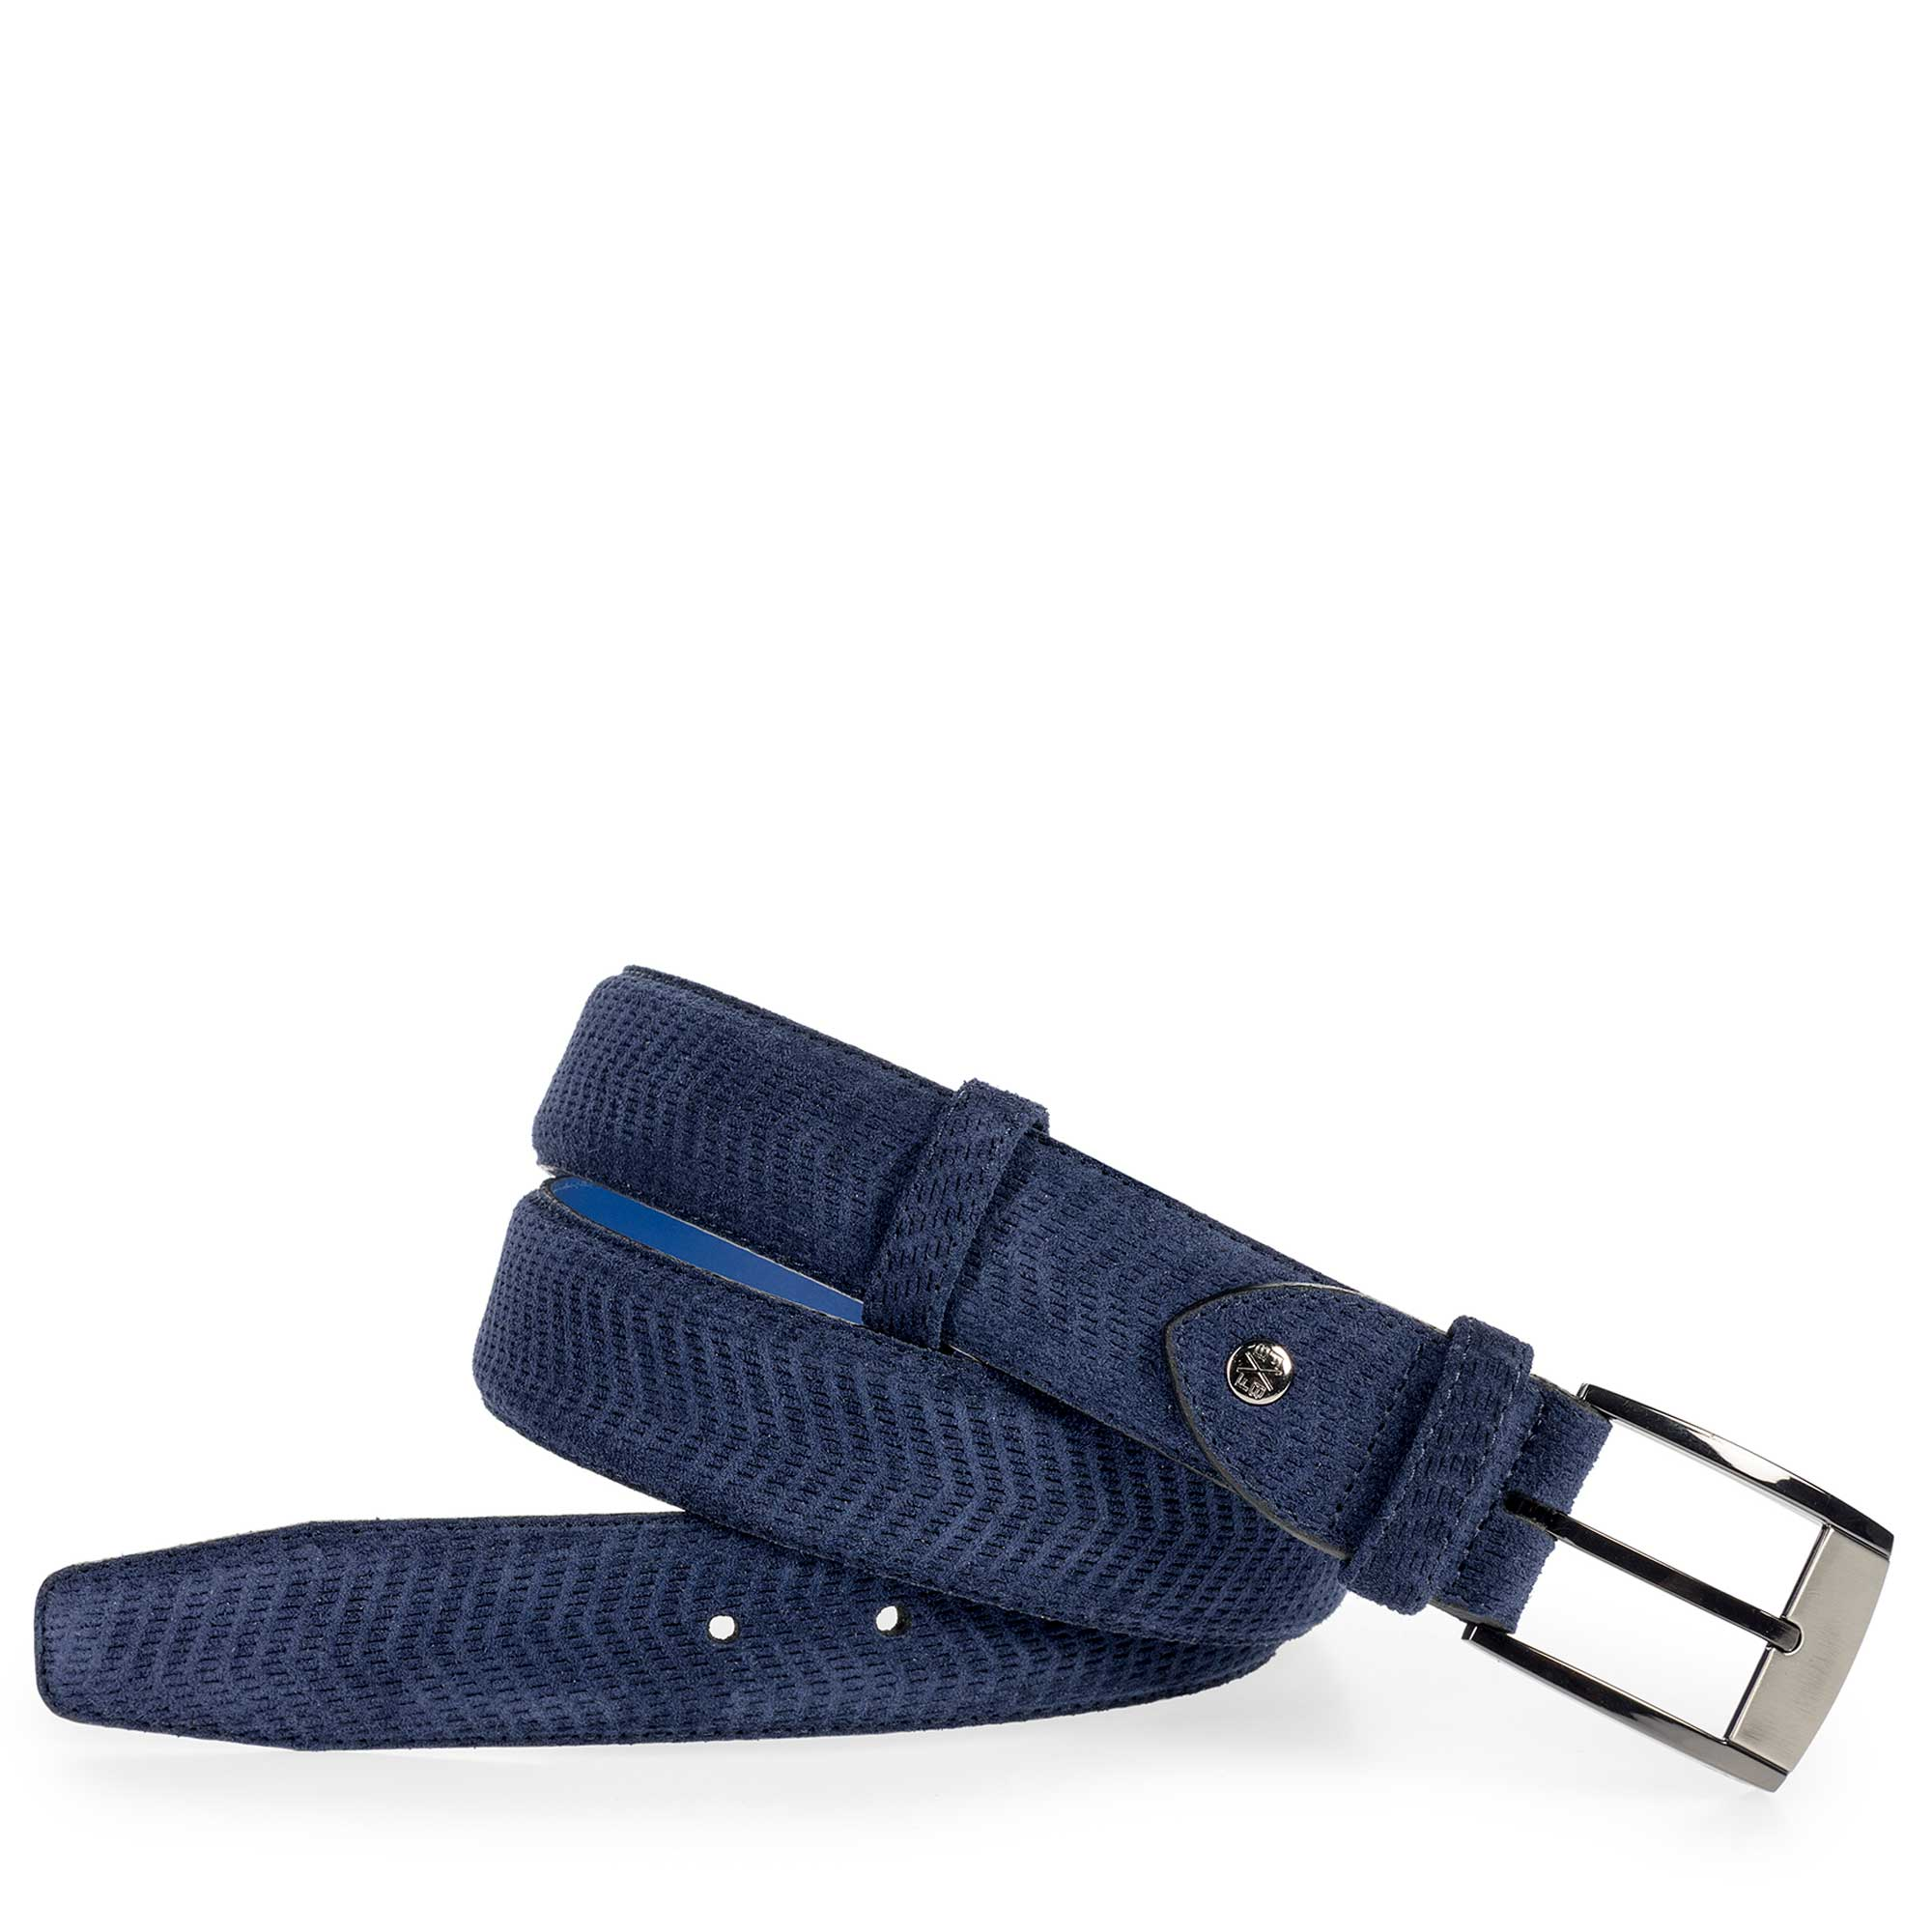 75180/07 - Blue suede leather belt